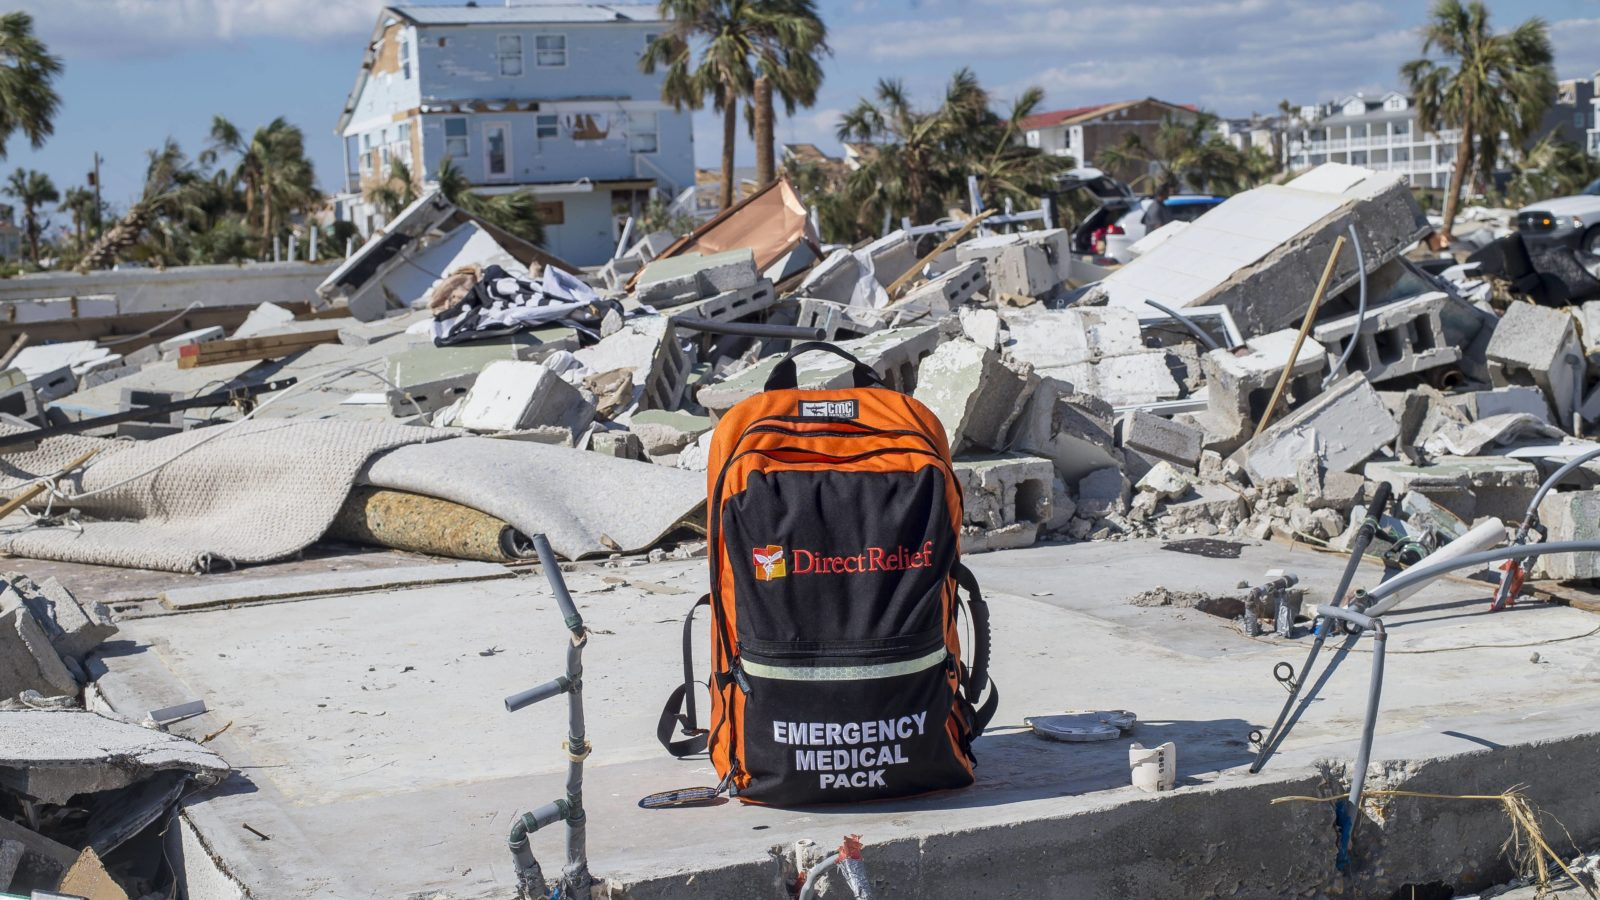 The community of Mexico Beach, Florida, was devastated by Hurricane Michael's impact in October, 2018. Direct Relief delivered emergency medical supplies to first responders, and is expanding hurricane preparedness efforts this year. (Photo by Zack Wittman for Direct Relief)